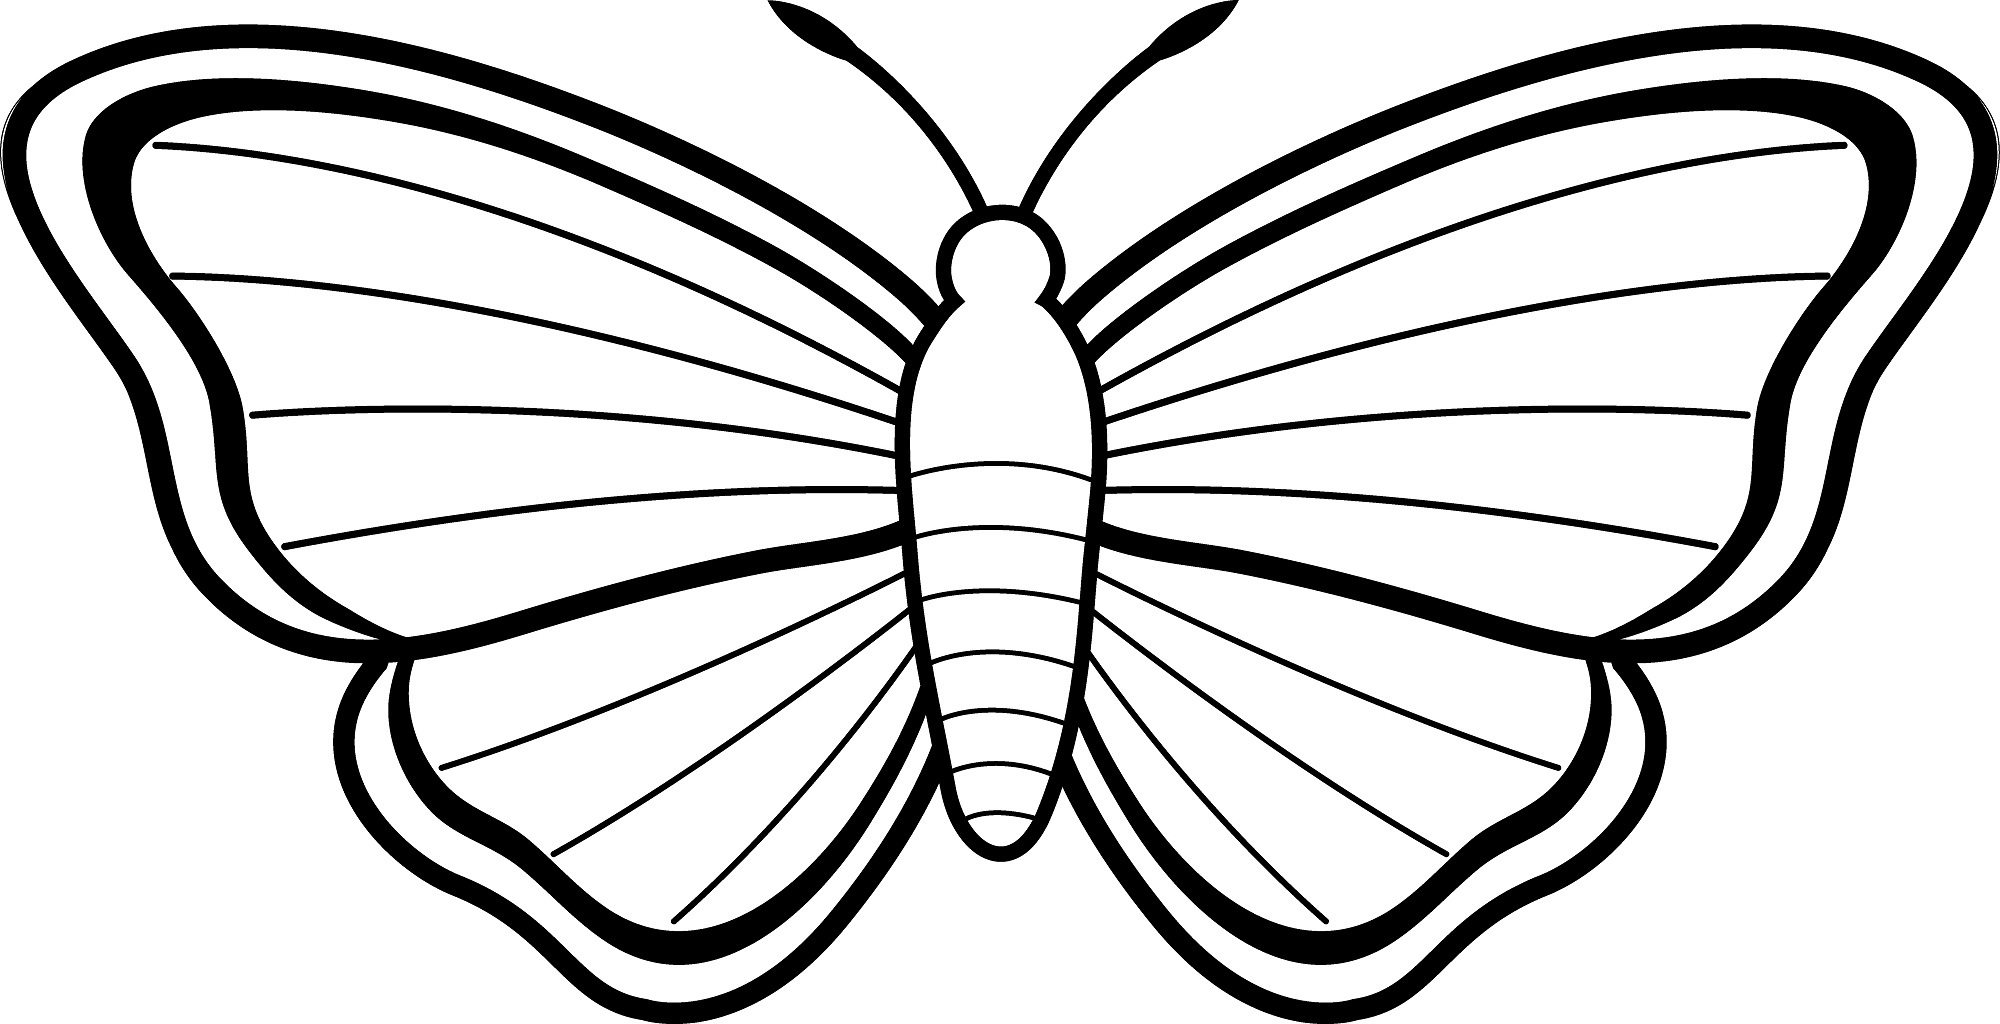 coloring pages for kids butterfly free printable butterfly coloring pages for kids butterfly coloring pages kids for